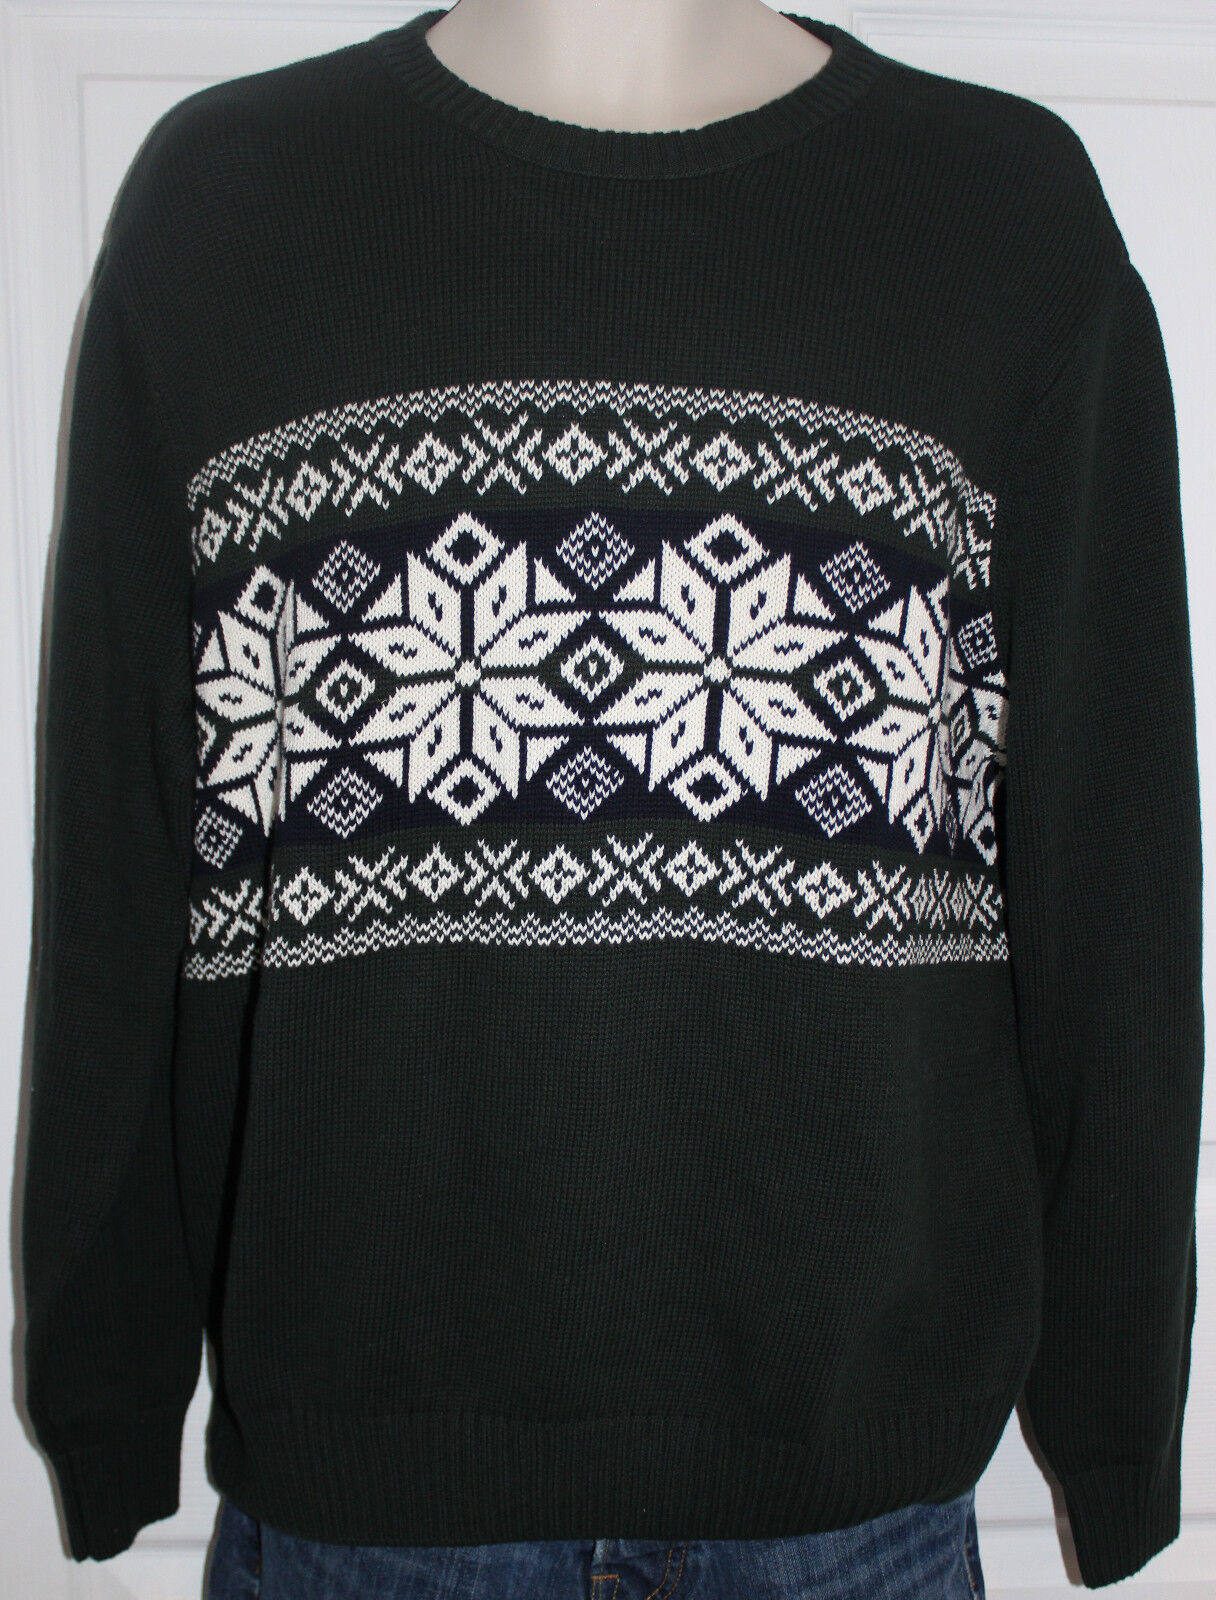 Dockers Men's L Ugly? Green Navy White Christmas Snowflake Sweater Ski NWT $65